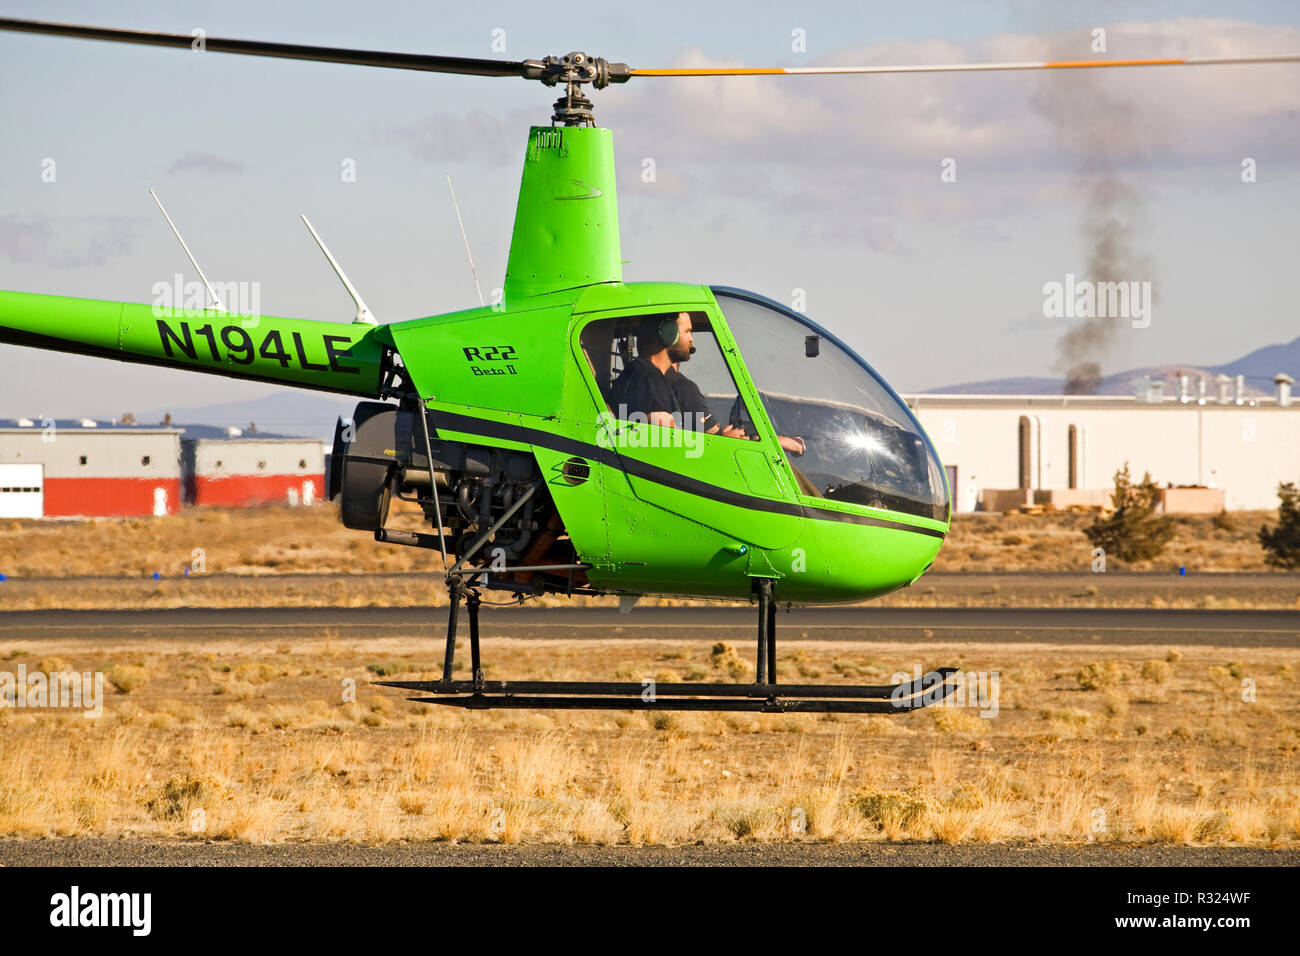 An instructor and student pilot fly a two-seat R22 Beta II helicopter made by the Robinson Helicopter Company, at a small city airport in Bend, Oregon - Stock Image